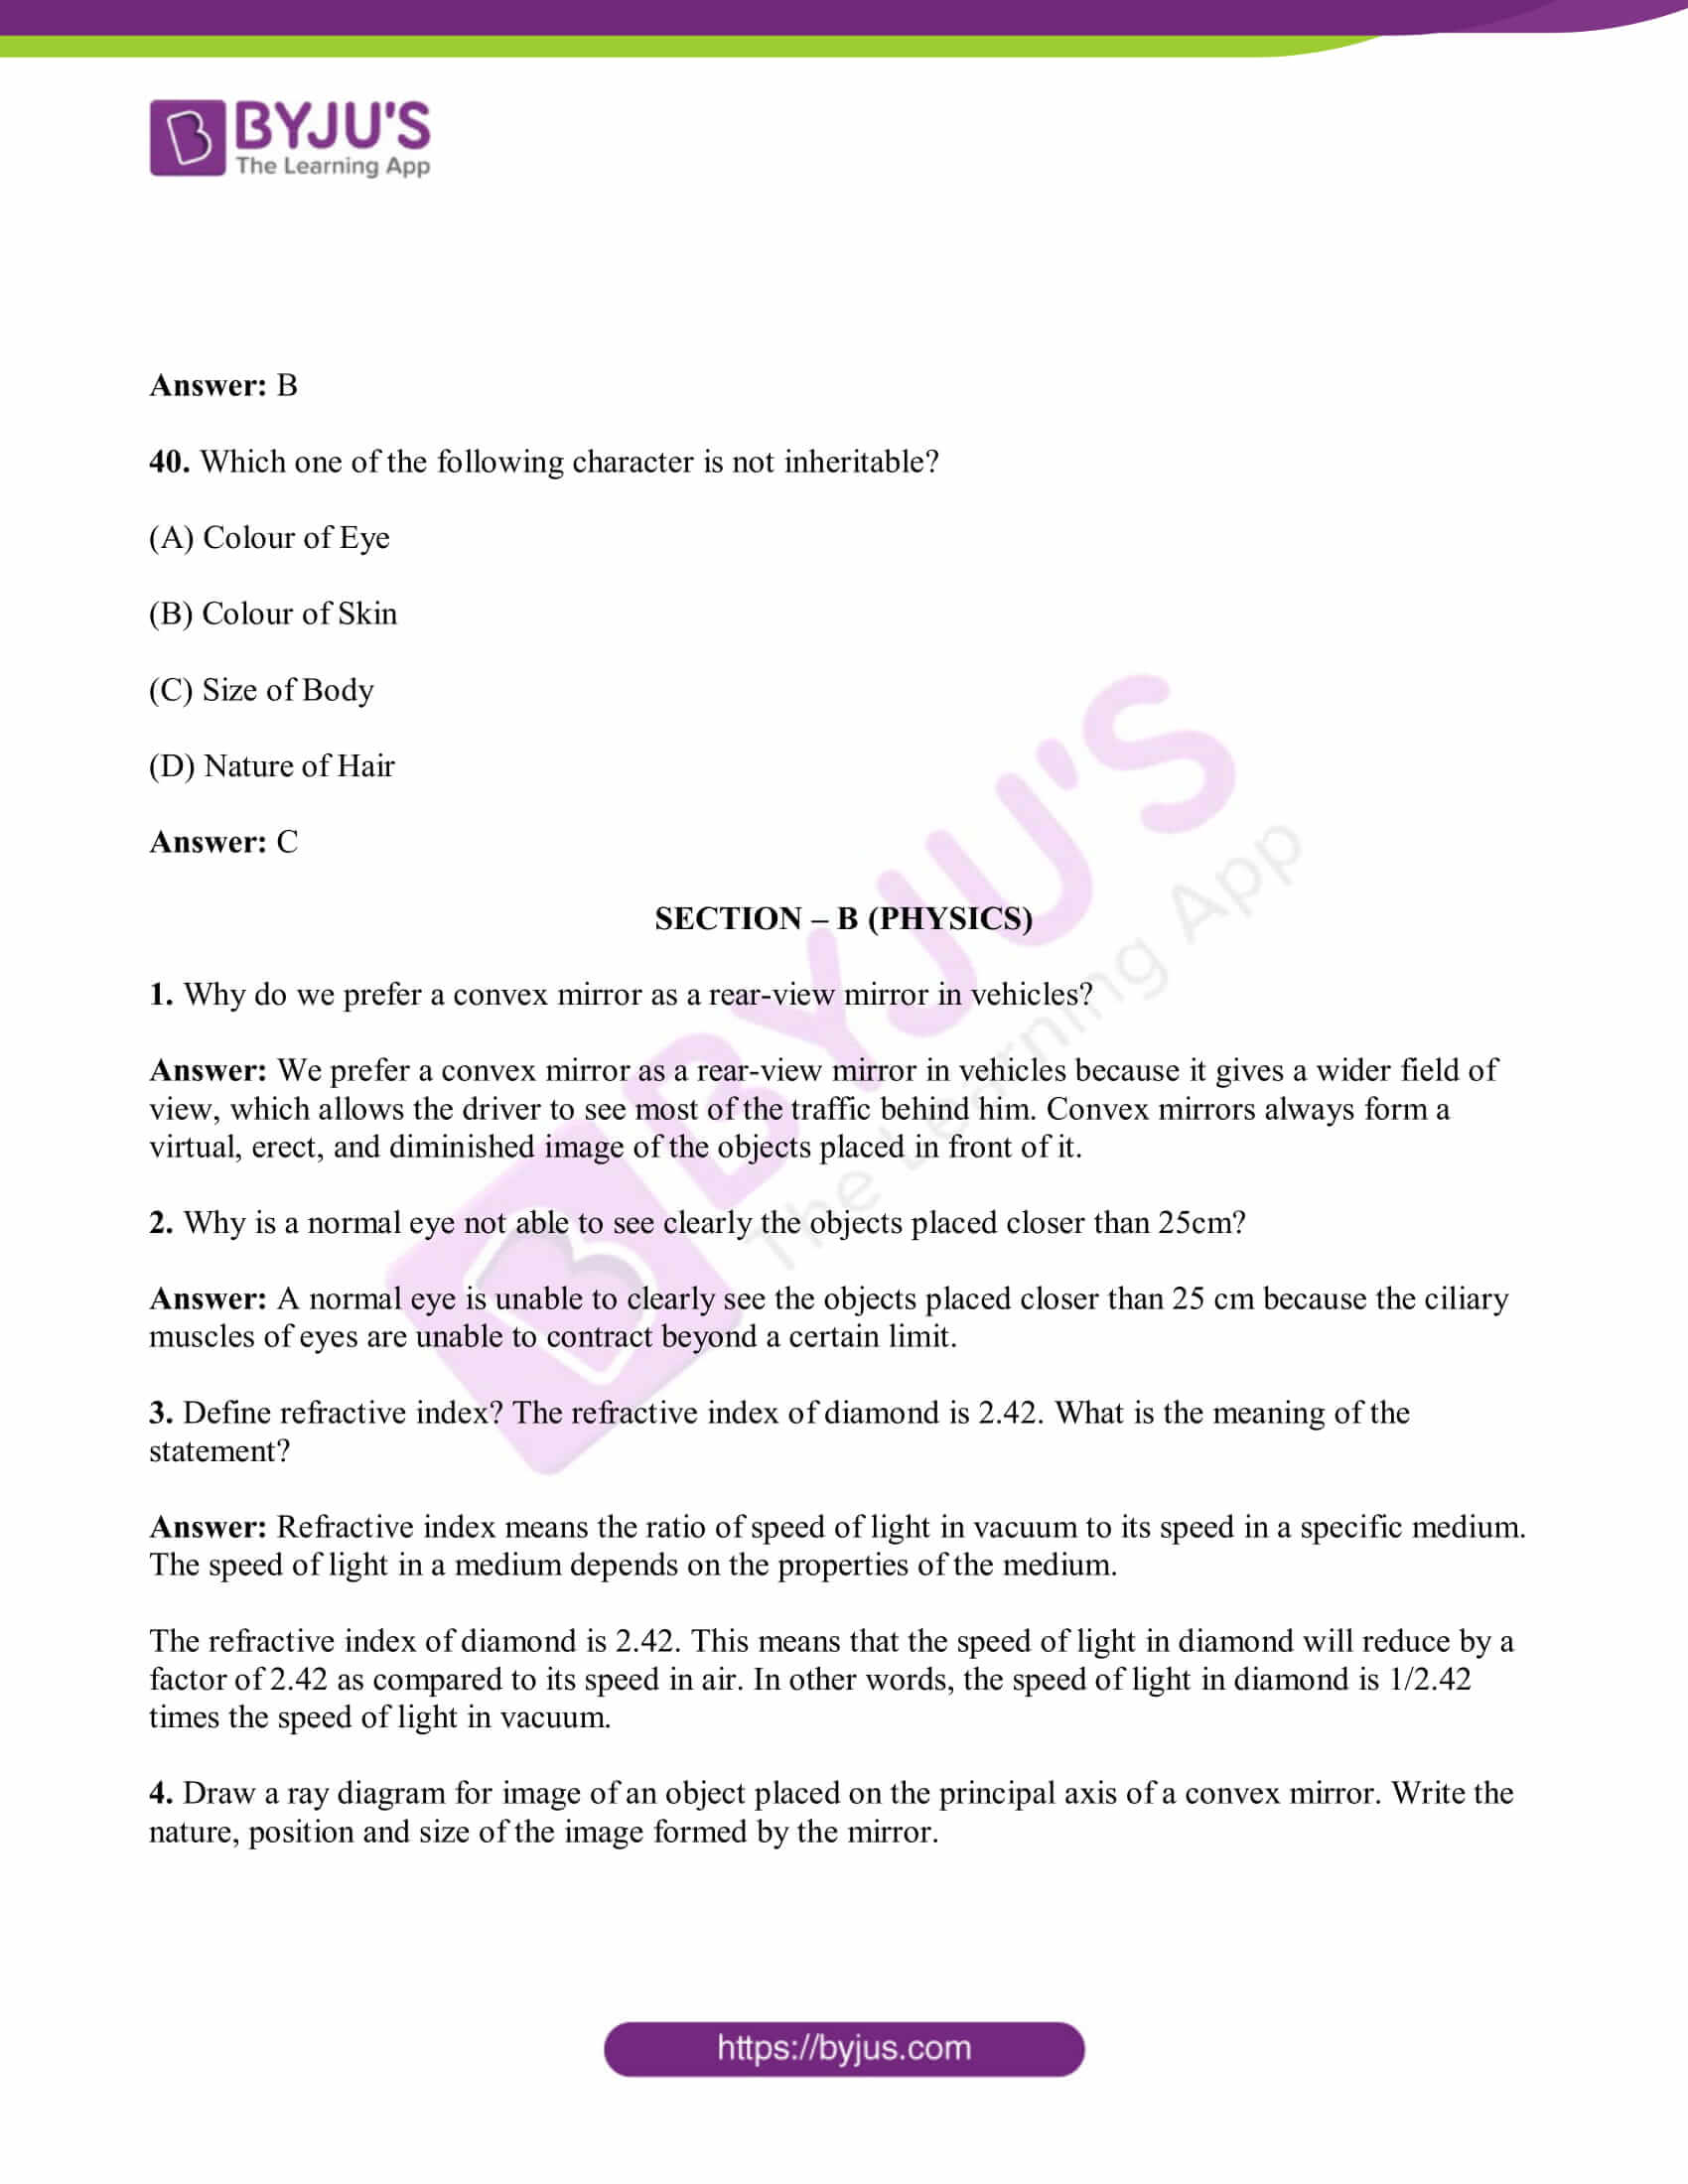 bihar board class 10 sci solved pre year quest papers 2019 12